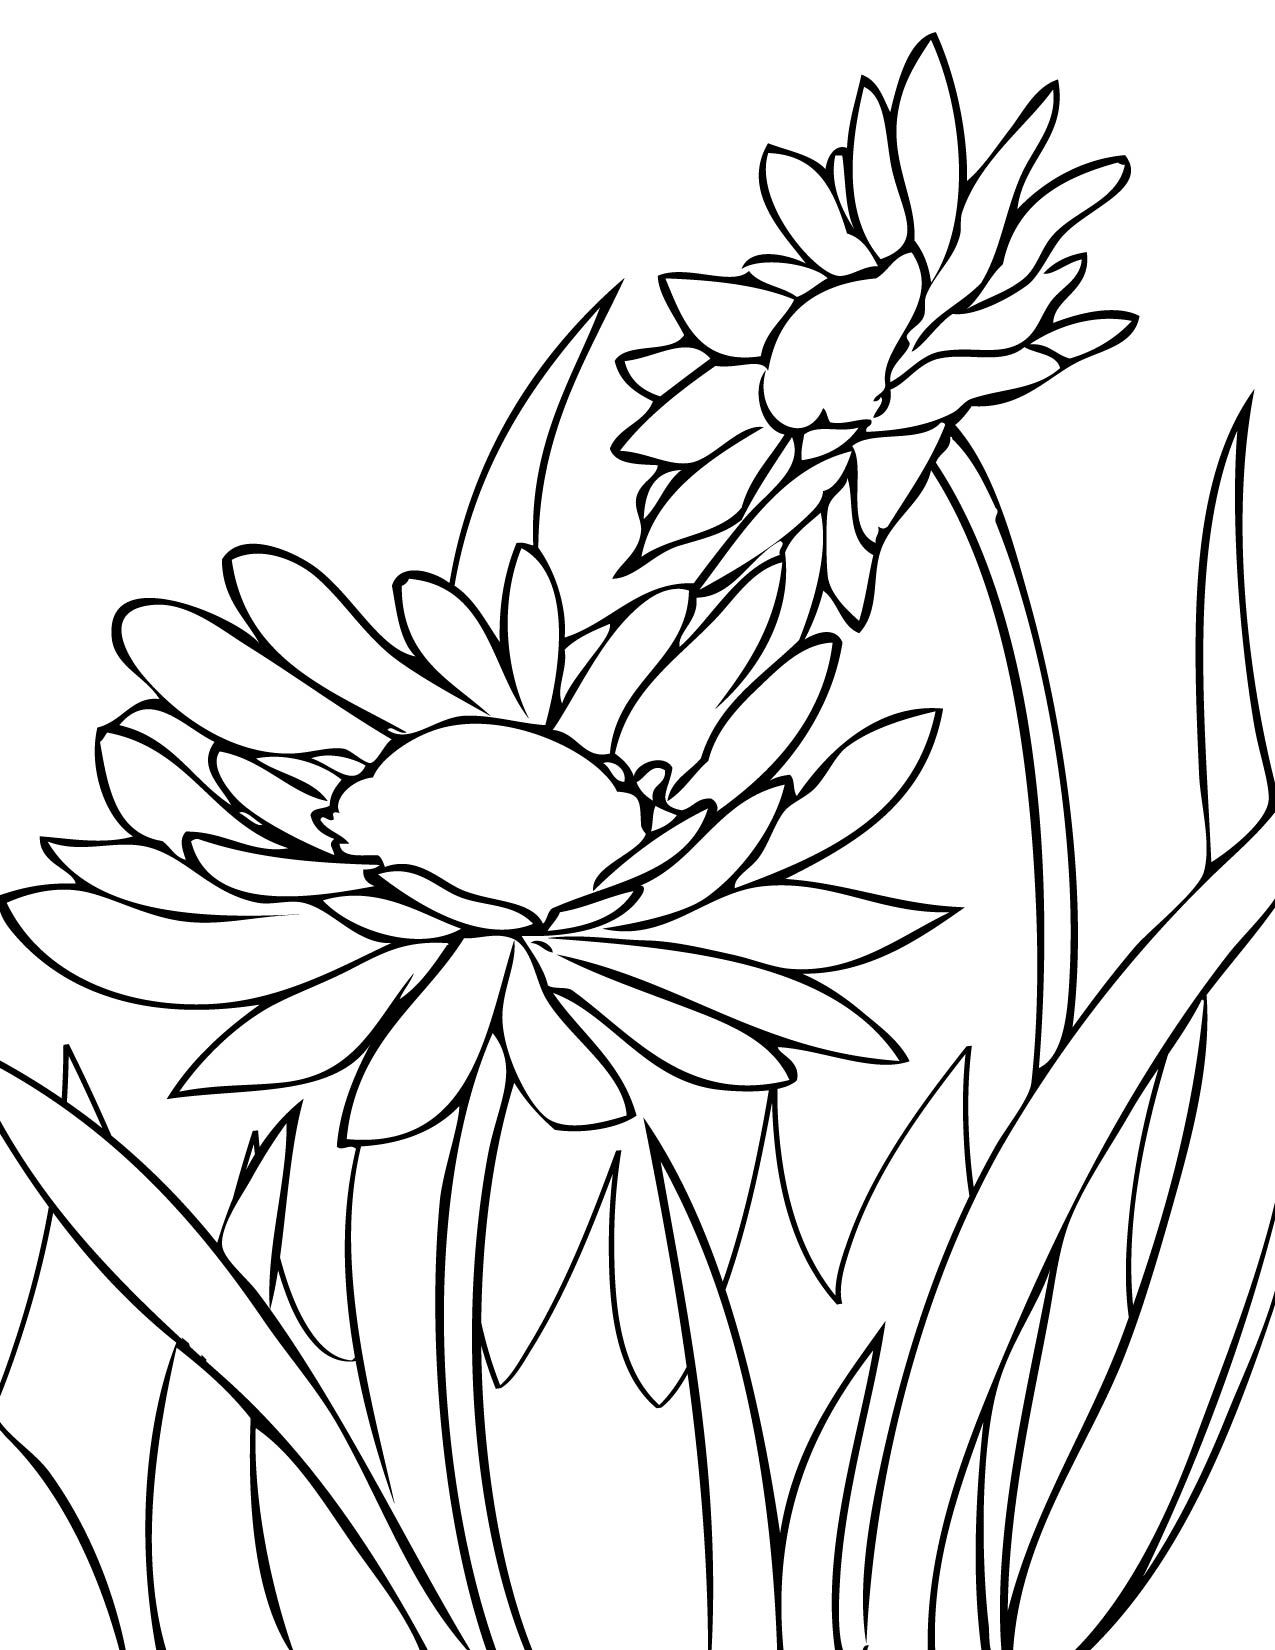 draw daisies Print This Page Spring Flowers Coloring